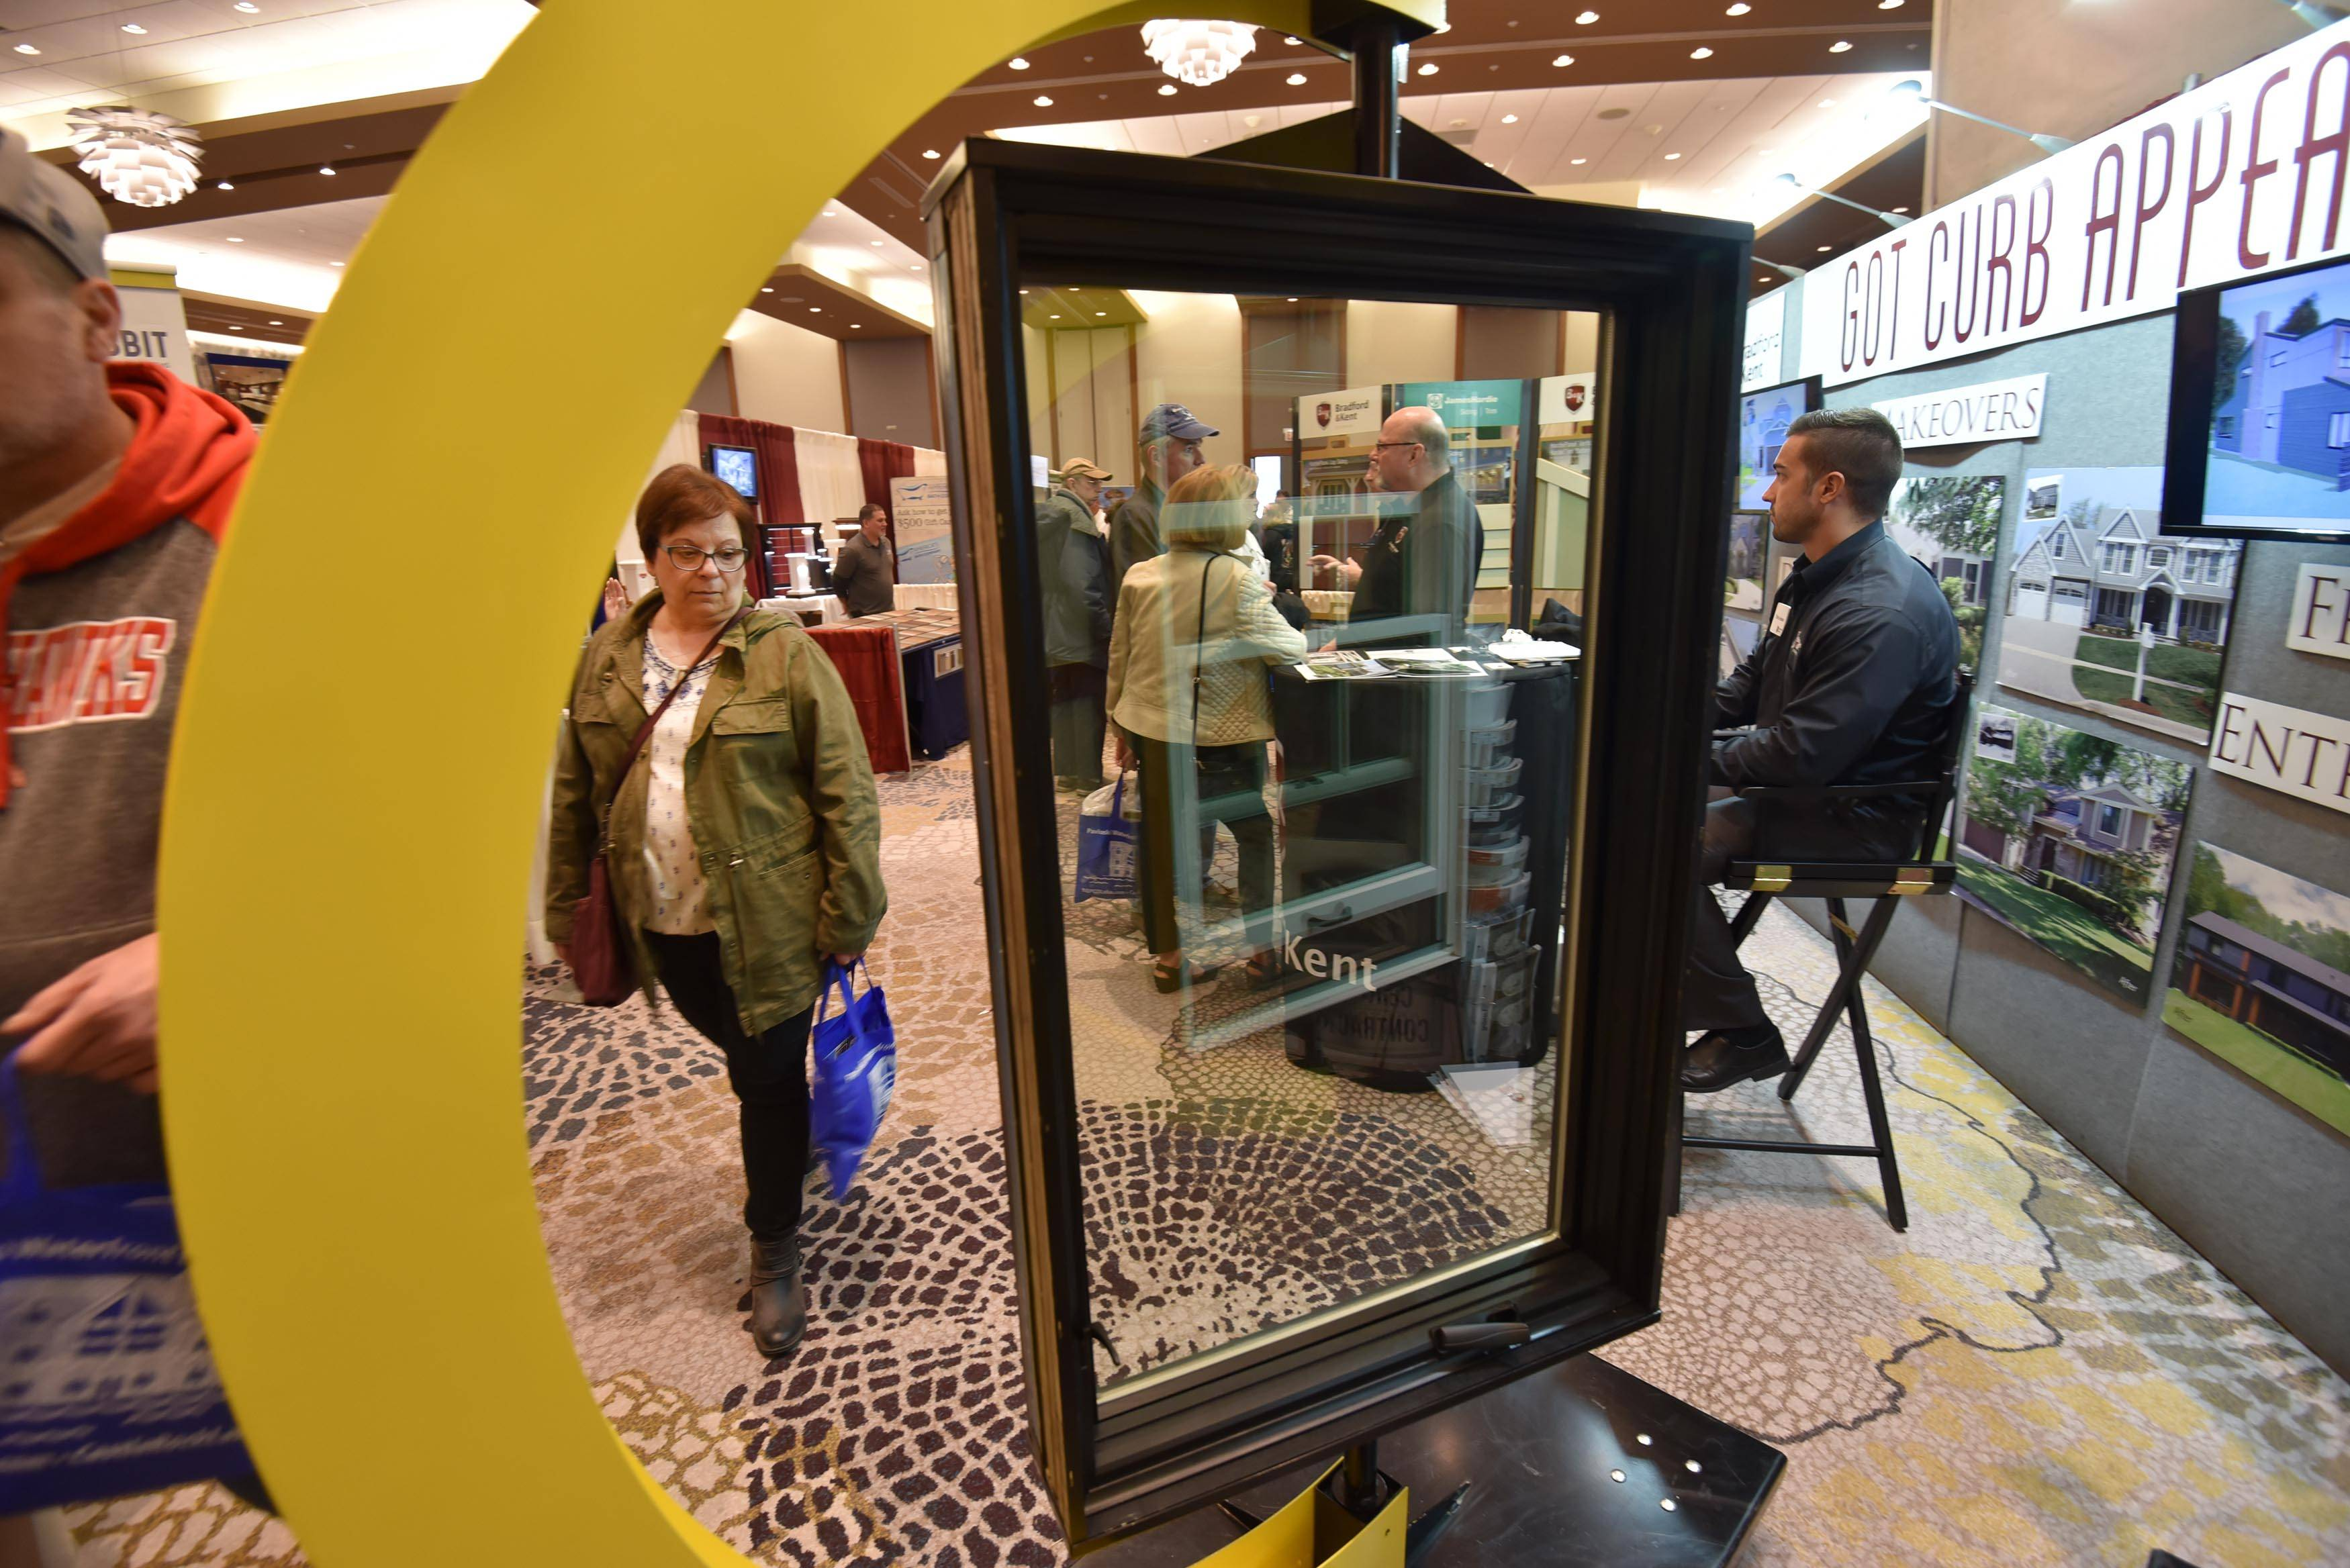 Downers Grove contractor Bradford & Kent had windows on display Sunday during the North Shore Home & Garden Show at the Westin Hotel and Event Center in Wheeling. The show featured hundreds of exhibitors and vendors from all facets of the home and garden industries.